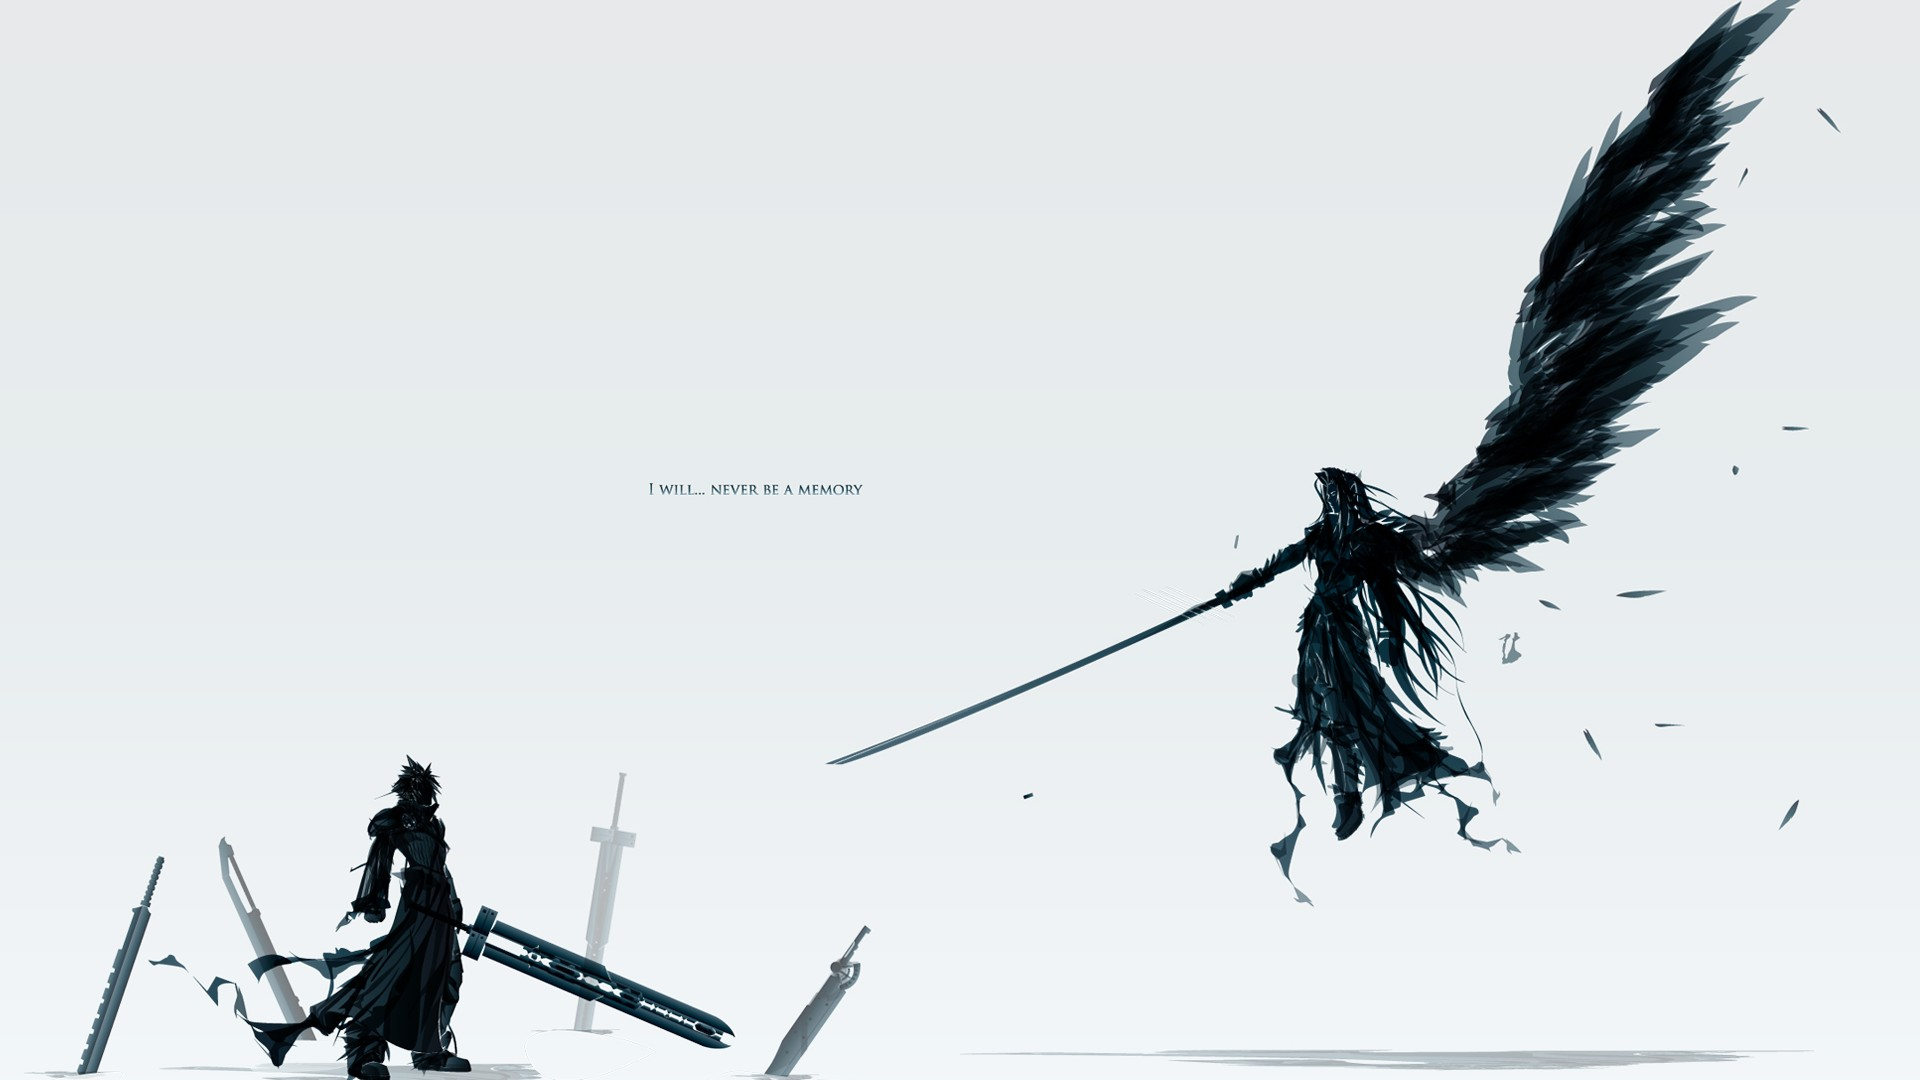 HD Final Fantasy Wallpaper